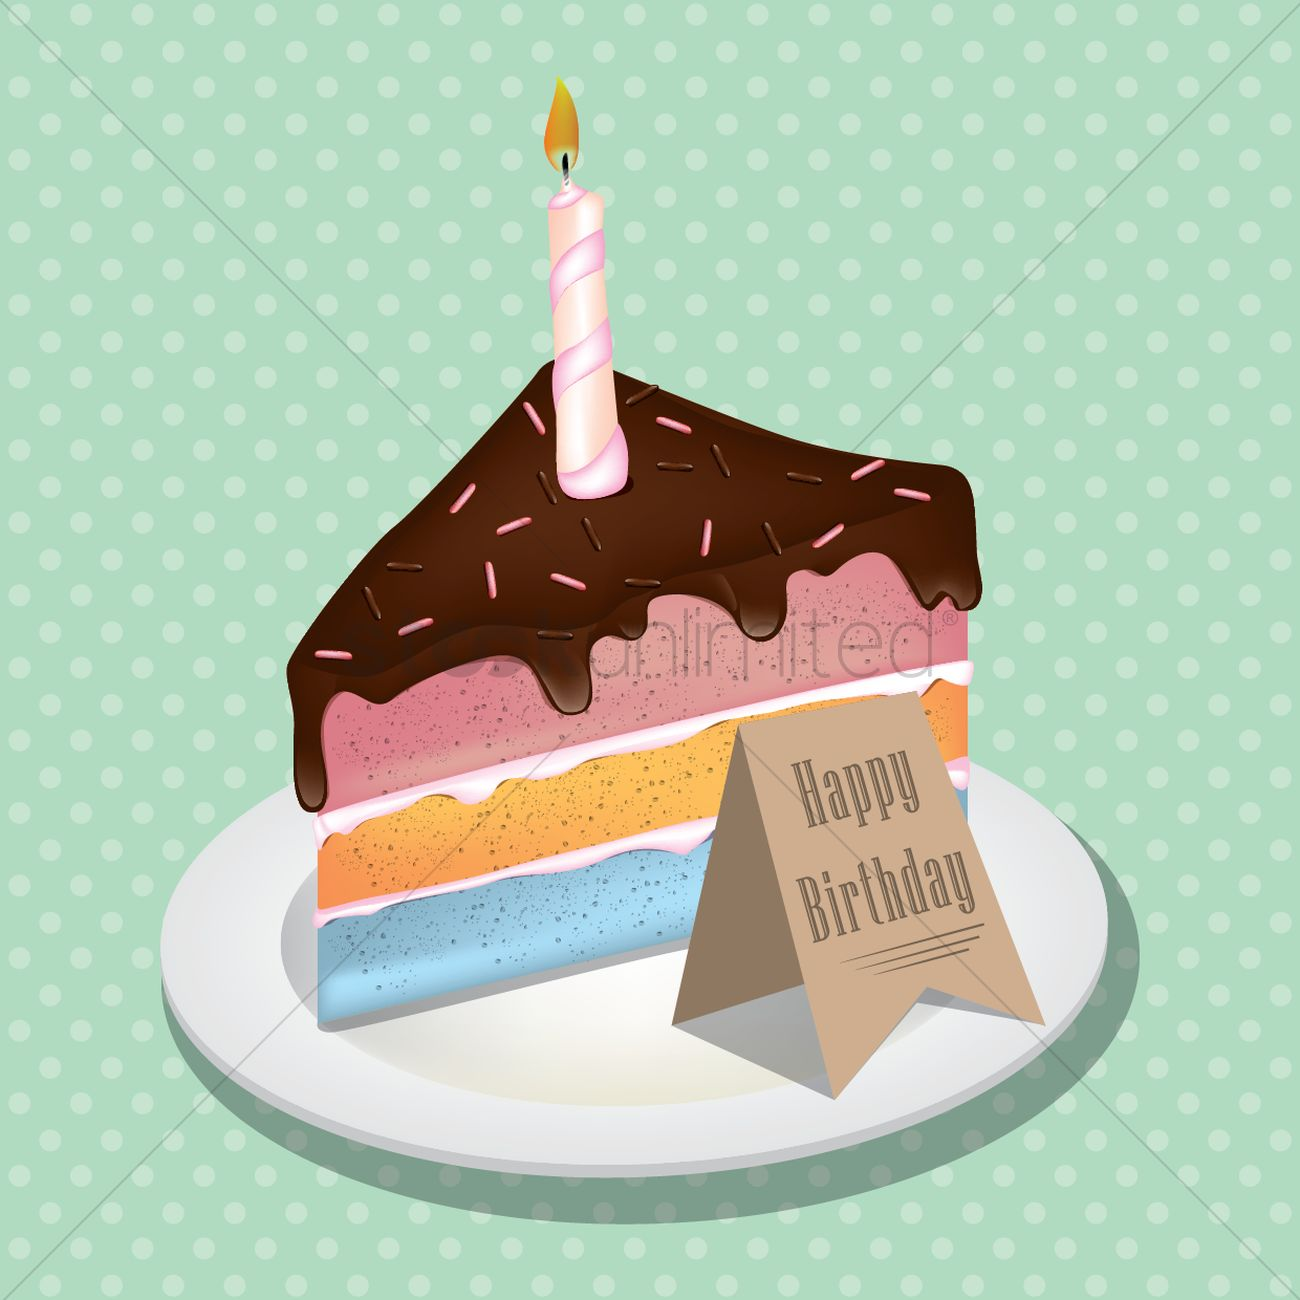 Terrific Piece Of Birthday Cake With Candle Vector Image 1530030 Personalised Birthday Cards Petedlily Jamesorg